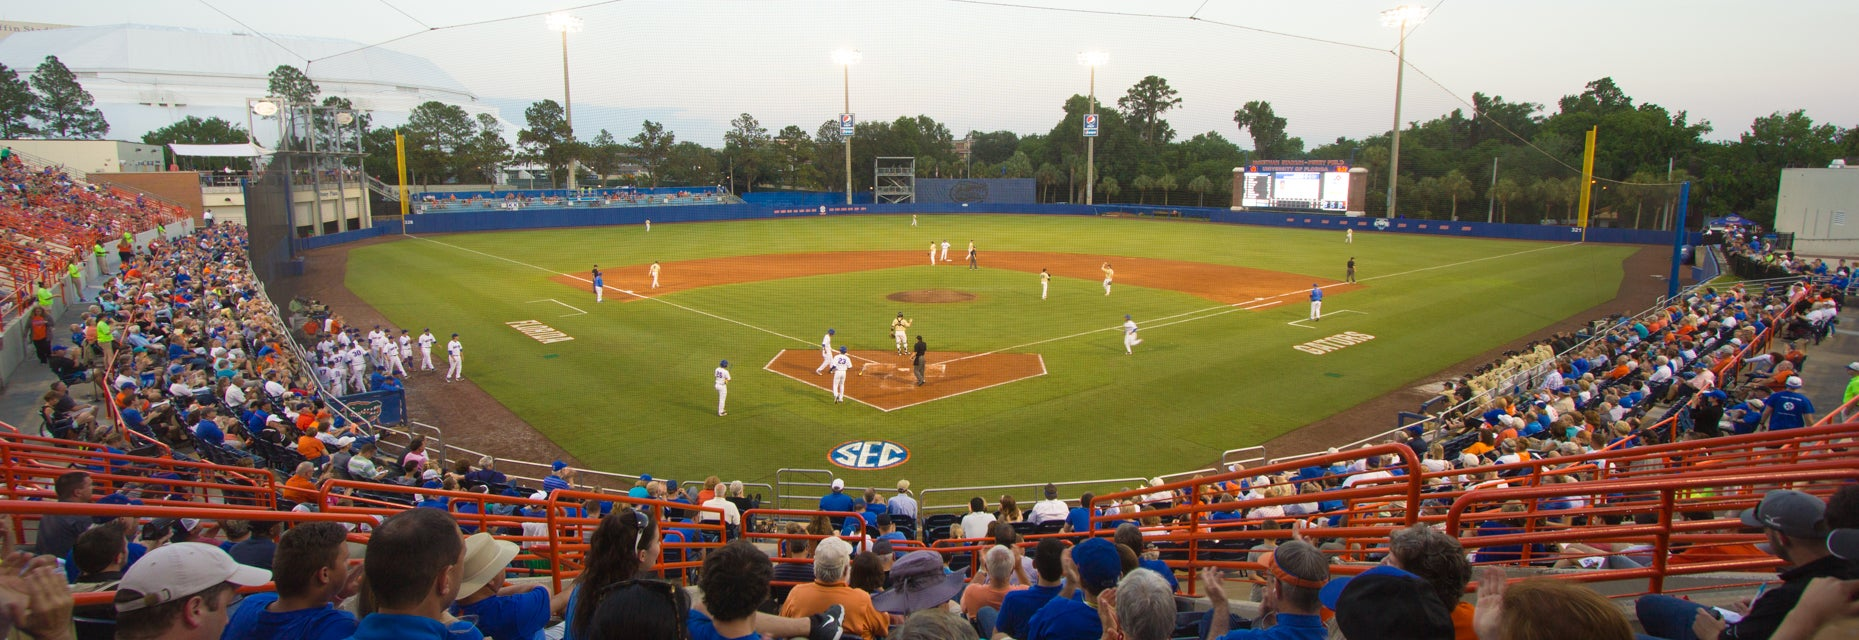 Florida Baseball Tickets